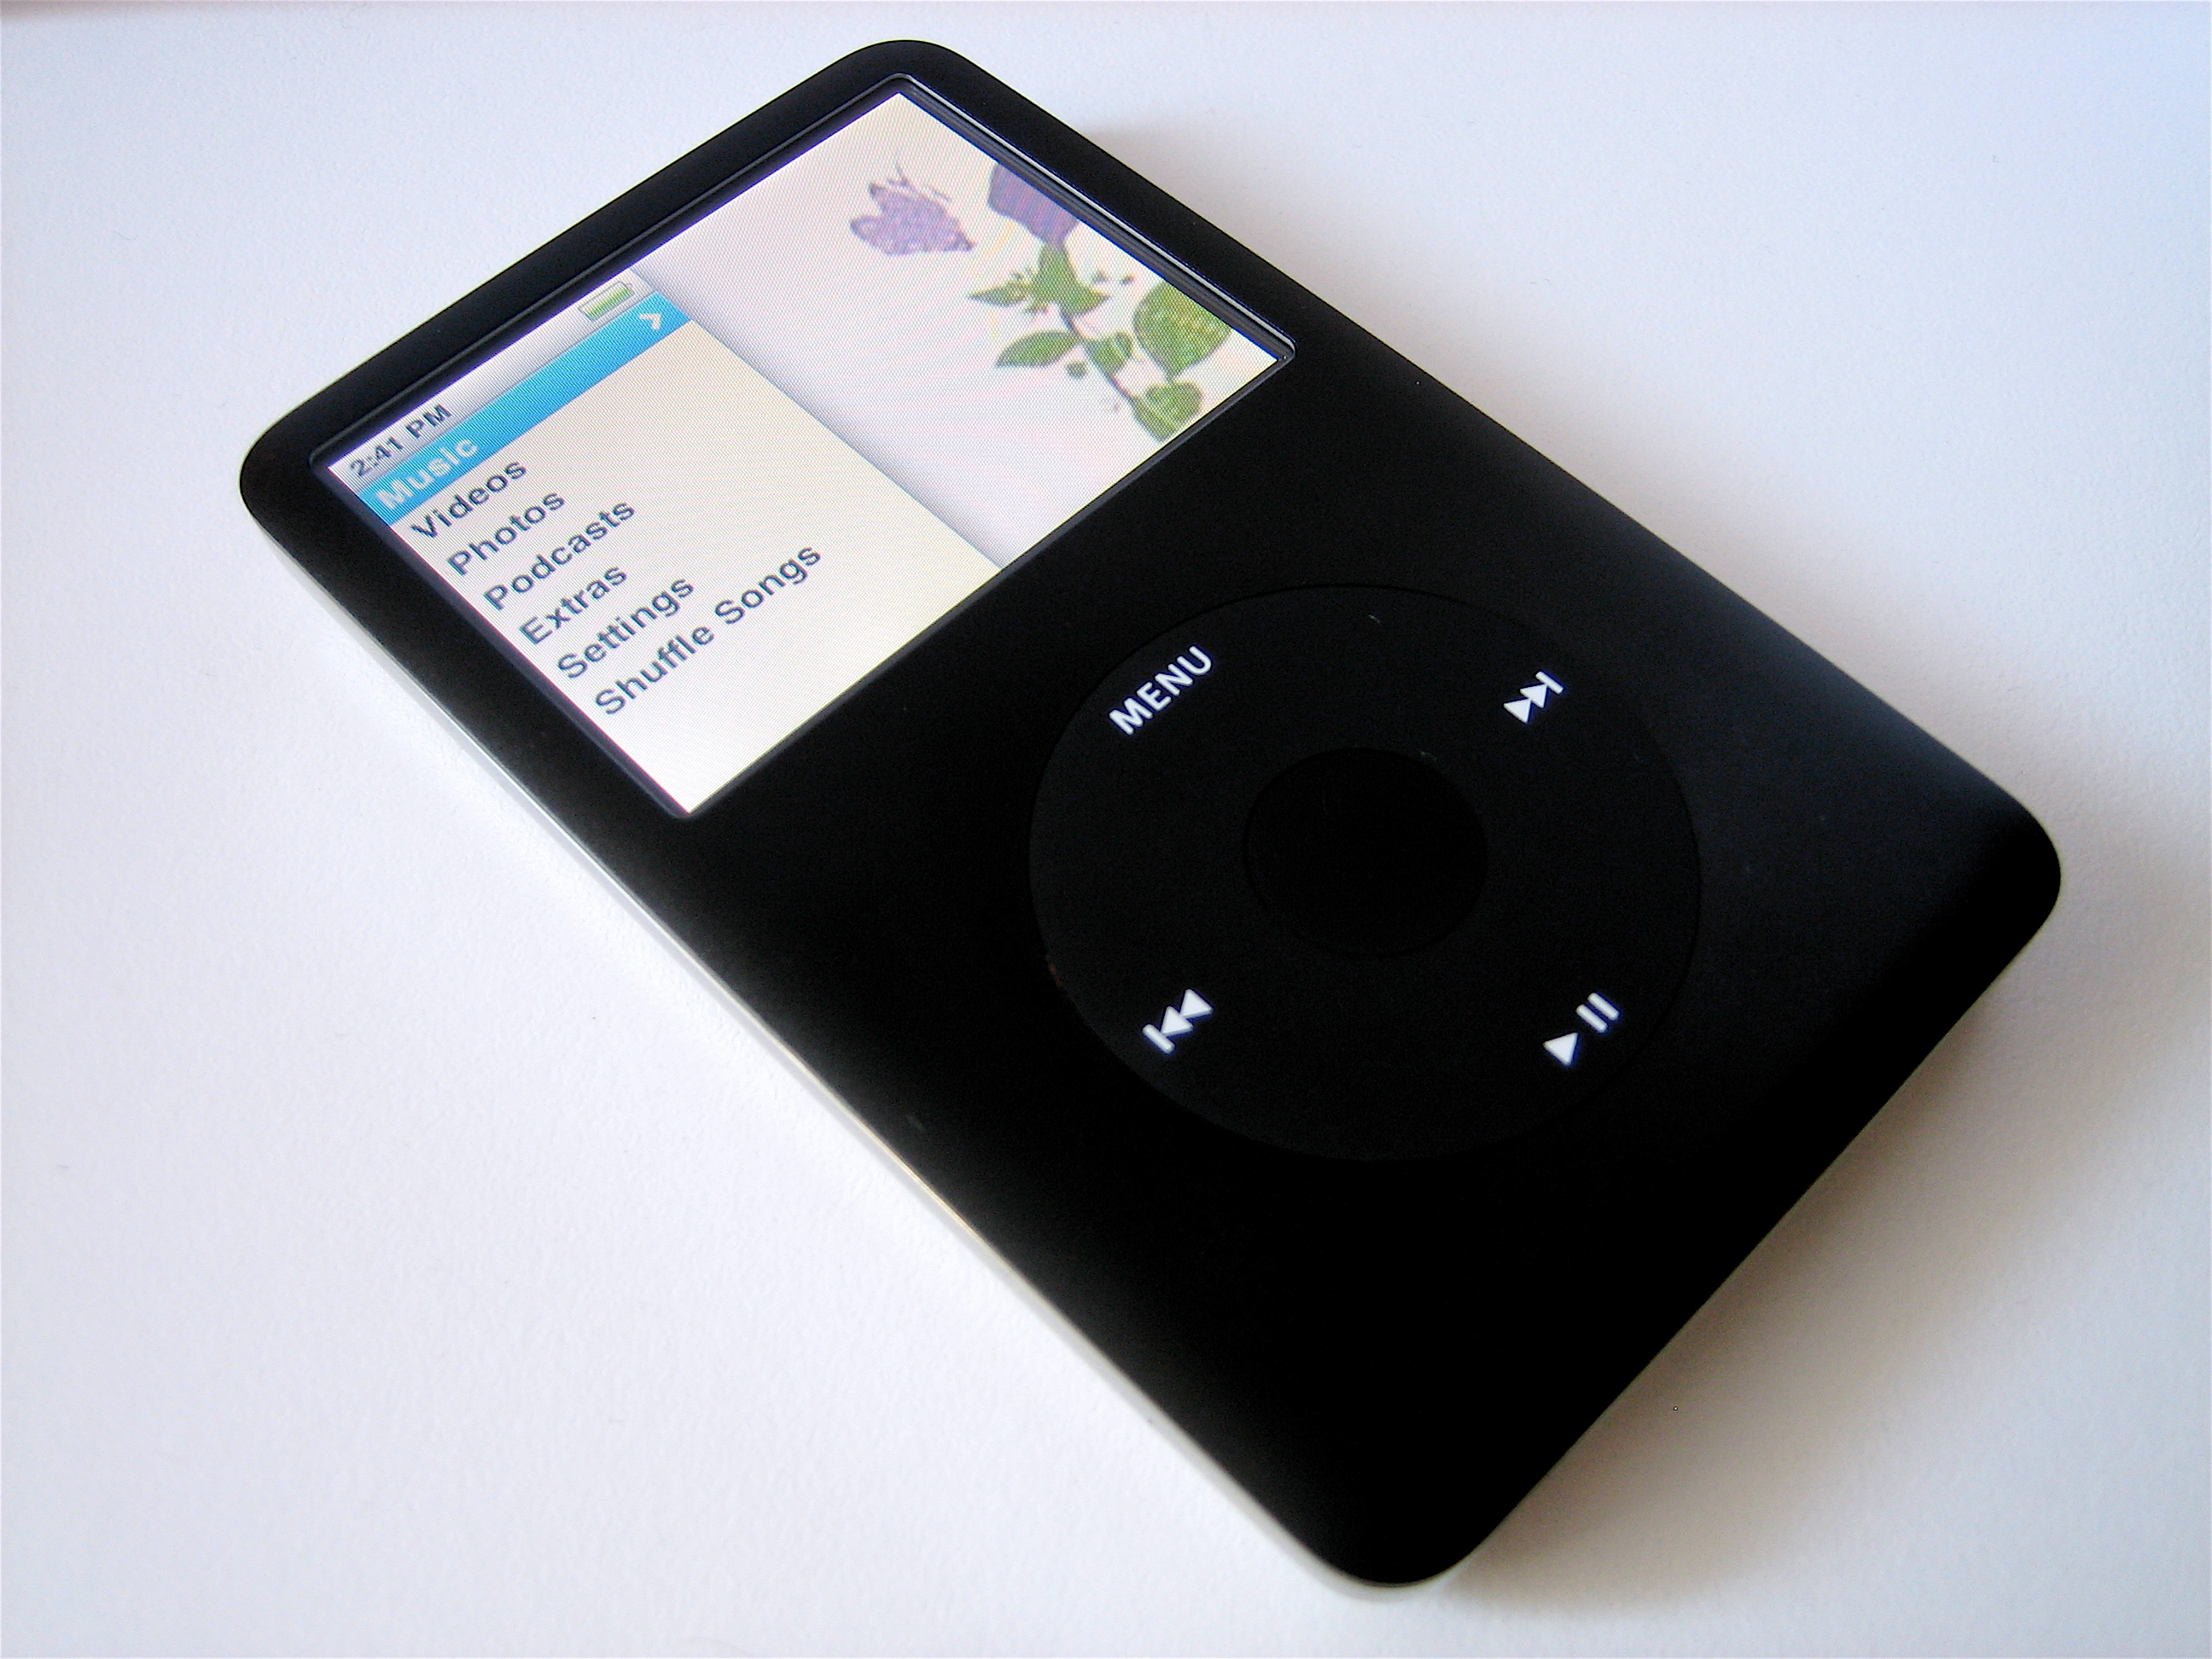 moving pictures iphone the of the ipod classic iphonecaptain ios 10 2001